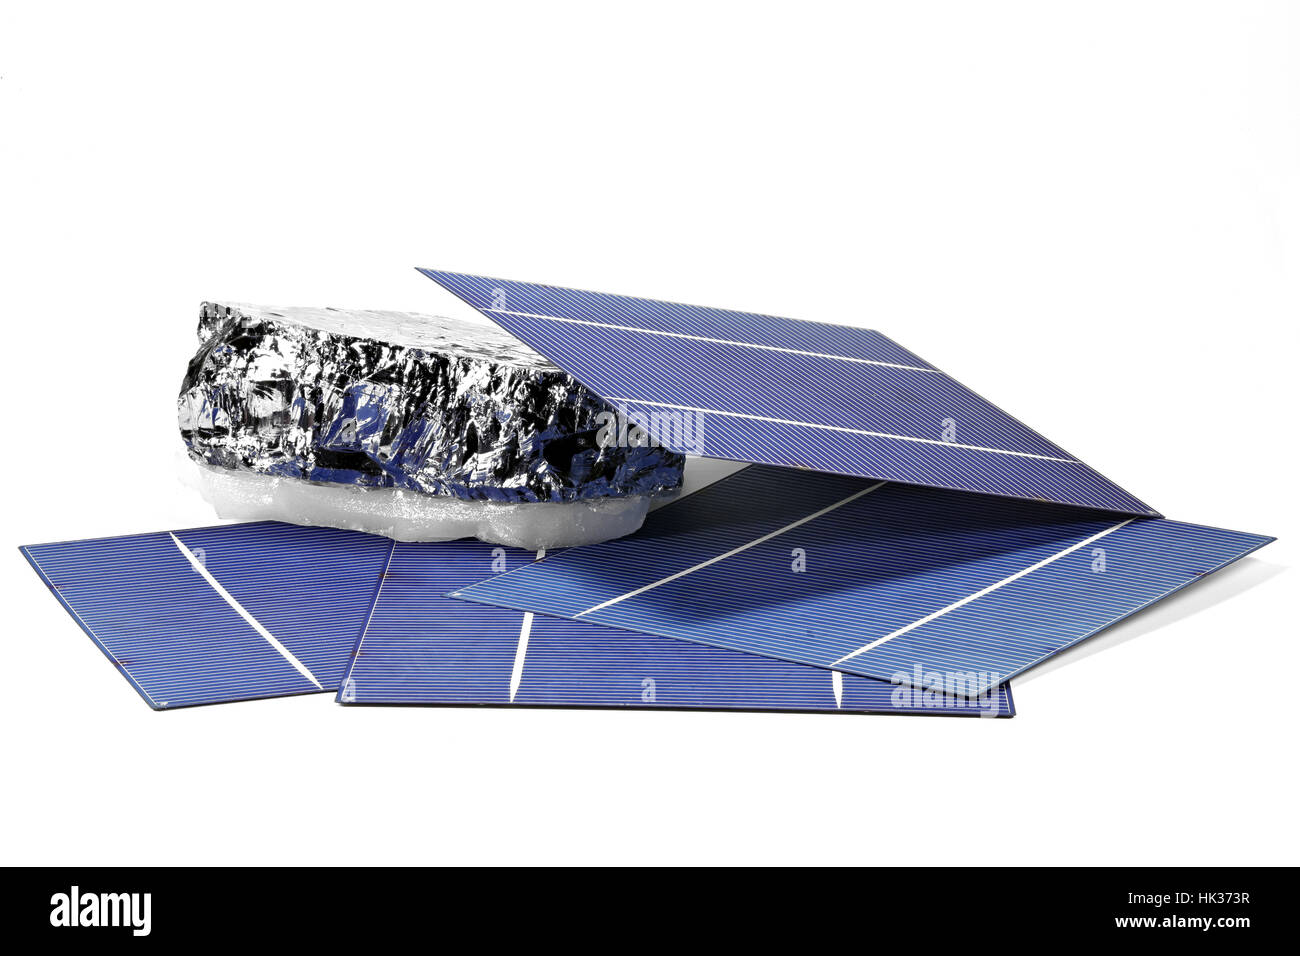 solar cells with polycrystalline silicon isolated on white background - Stock Image